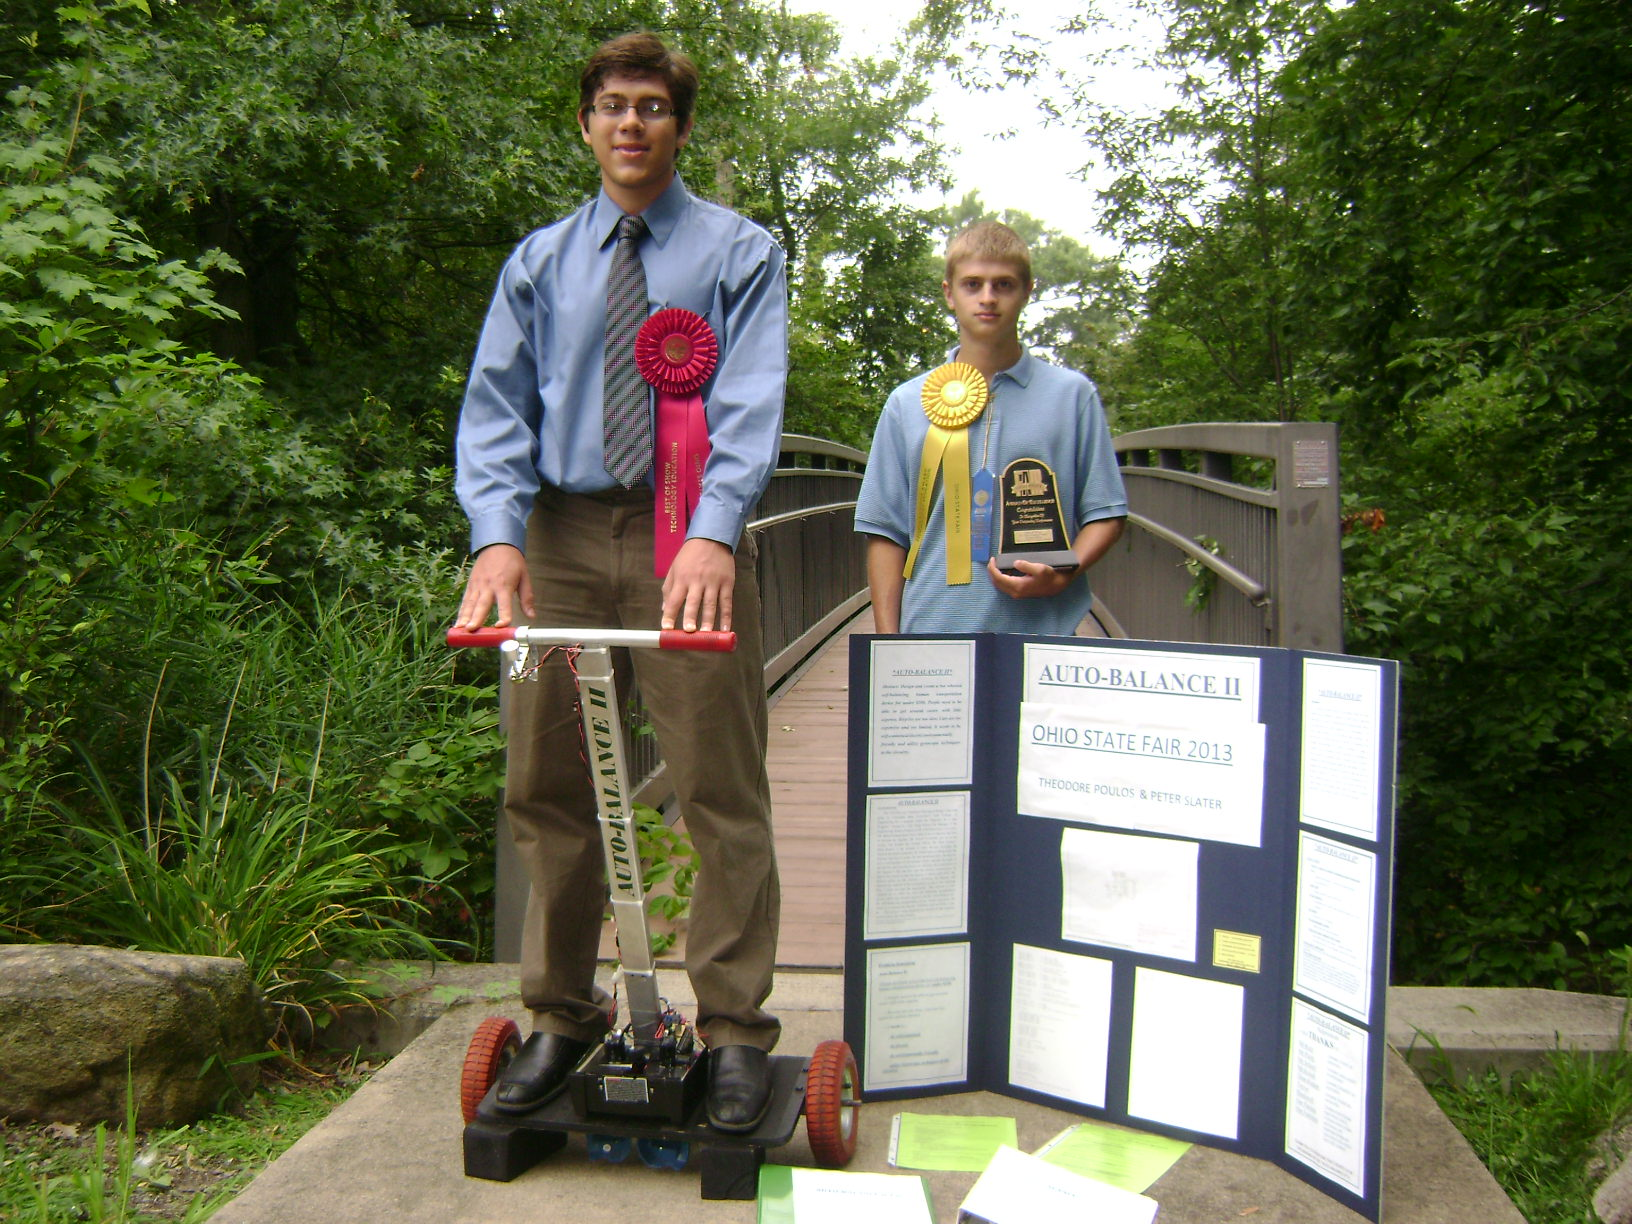 Auto Balance - Best of Show at Ohio State Fair T & E Showcase - Theodore Poulos and Peter Slater 8-19-2013